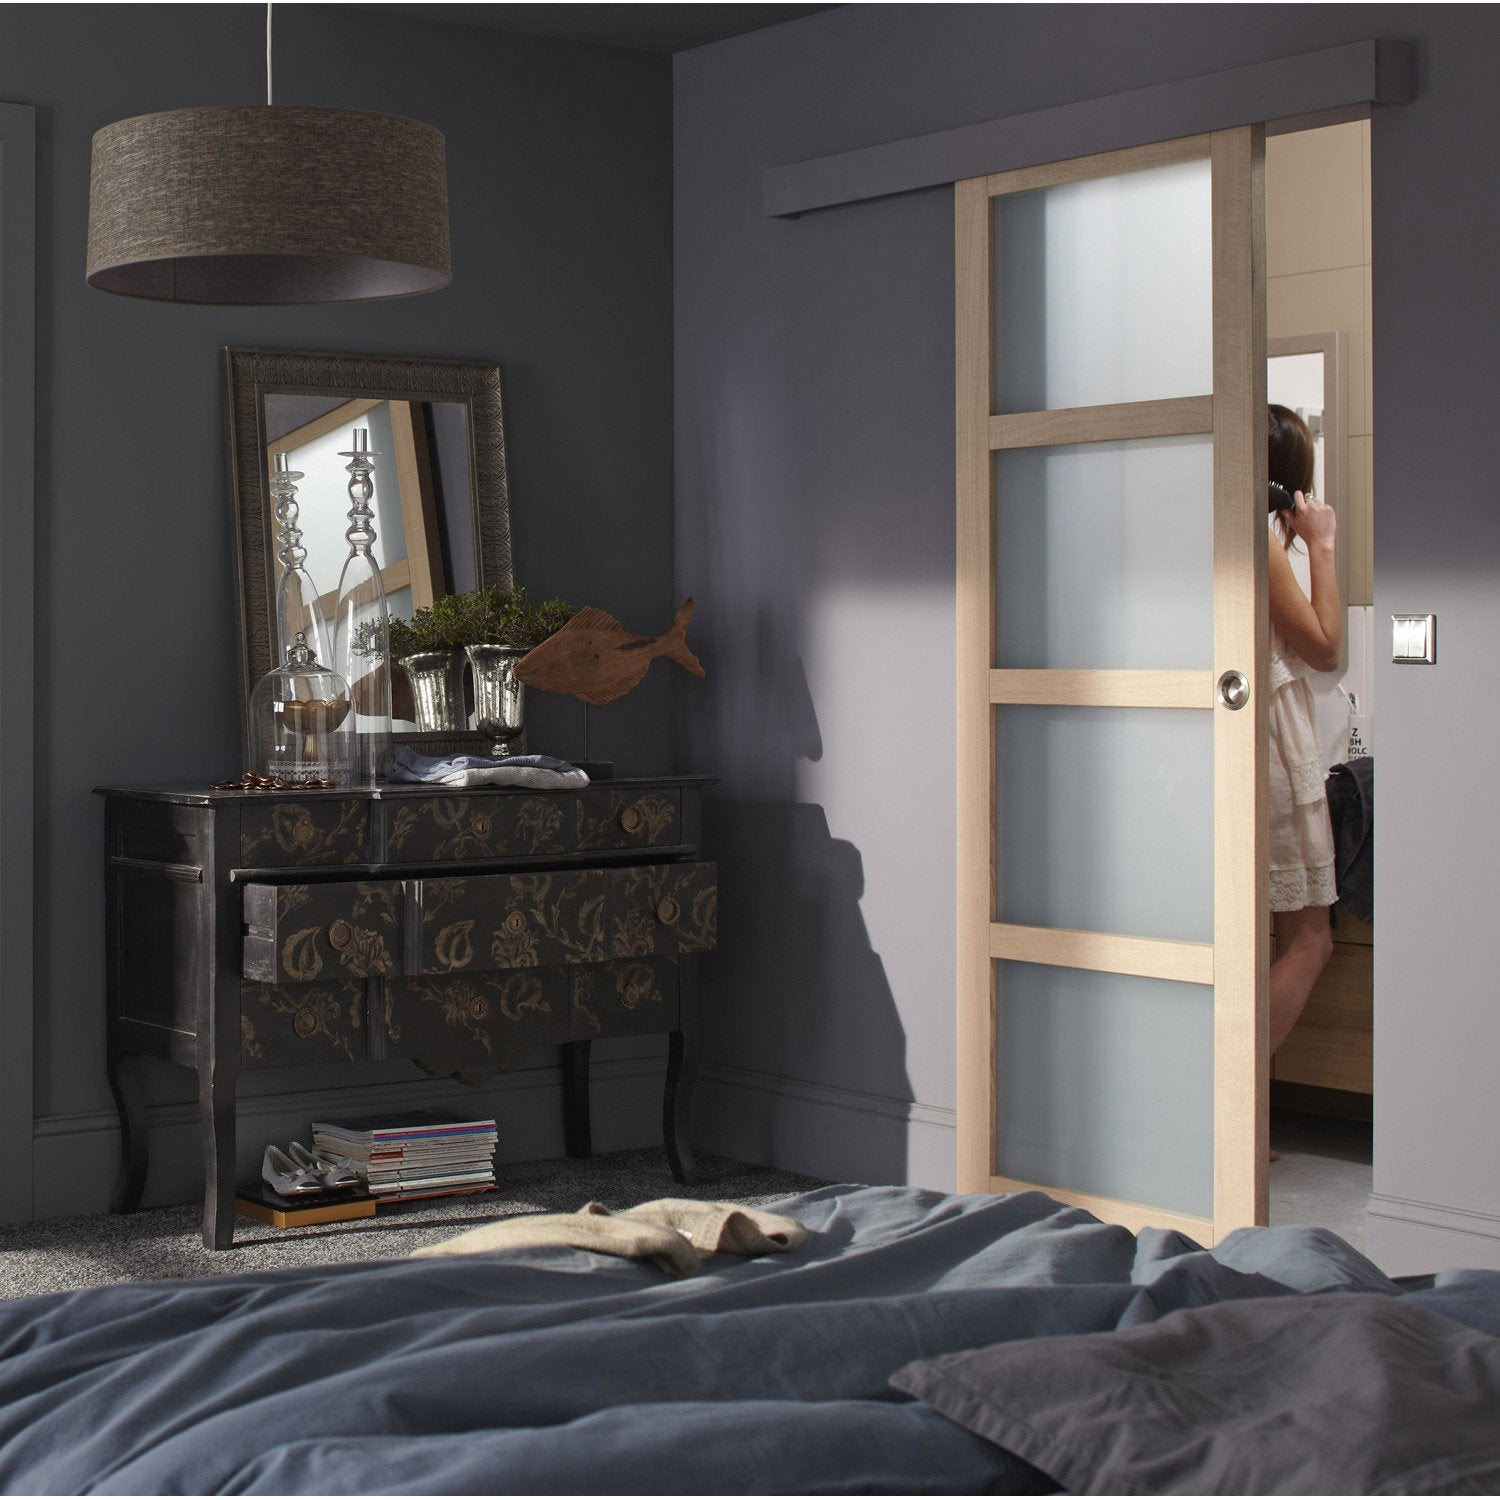 ensemble porte coulissante nova h tre avec le rail jazz 2 en aluminium leroy merlin. Black Bedroom Furniture Sets. Home Design Ideas